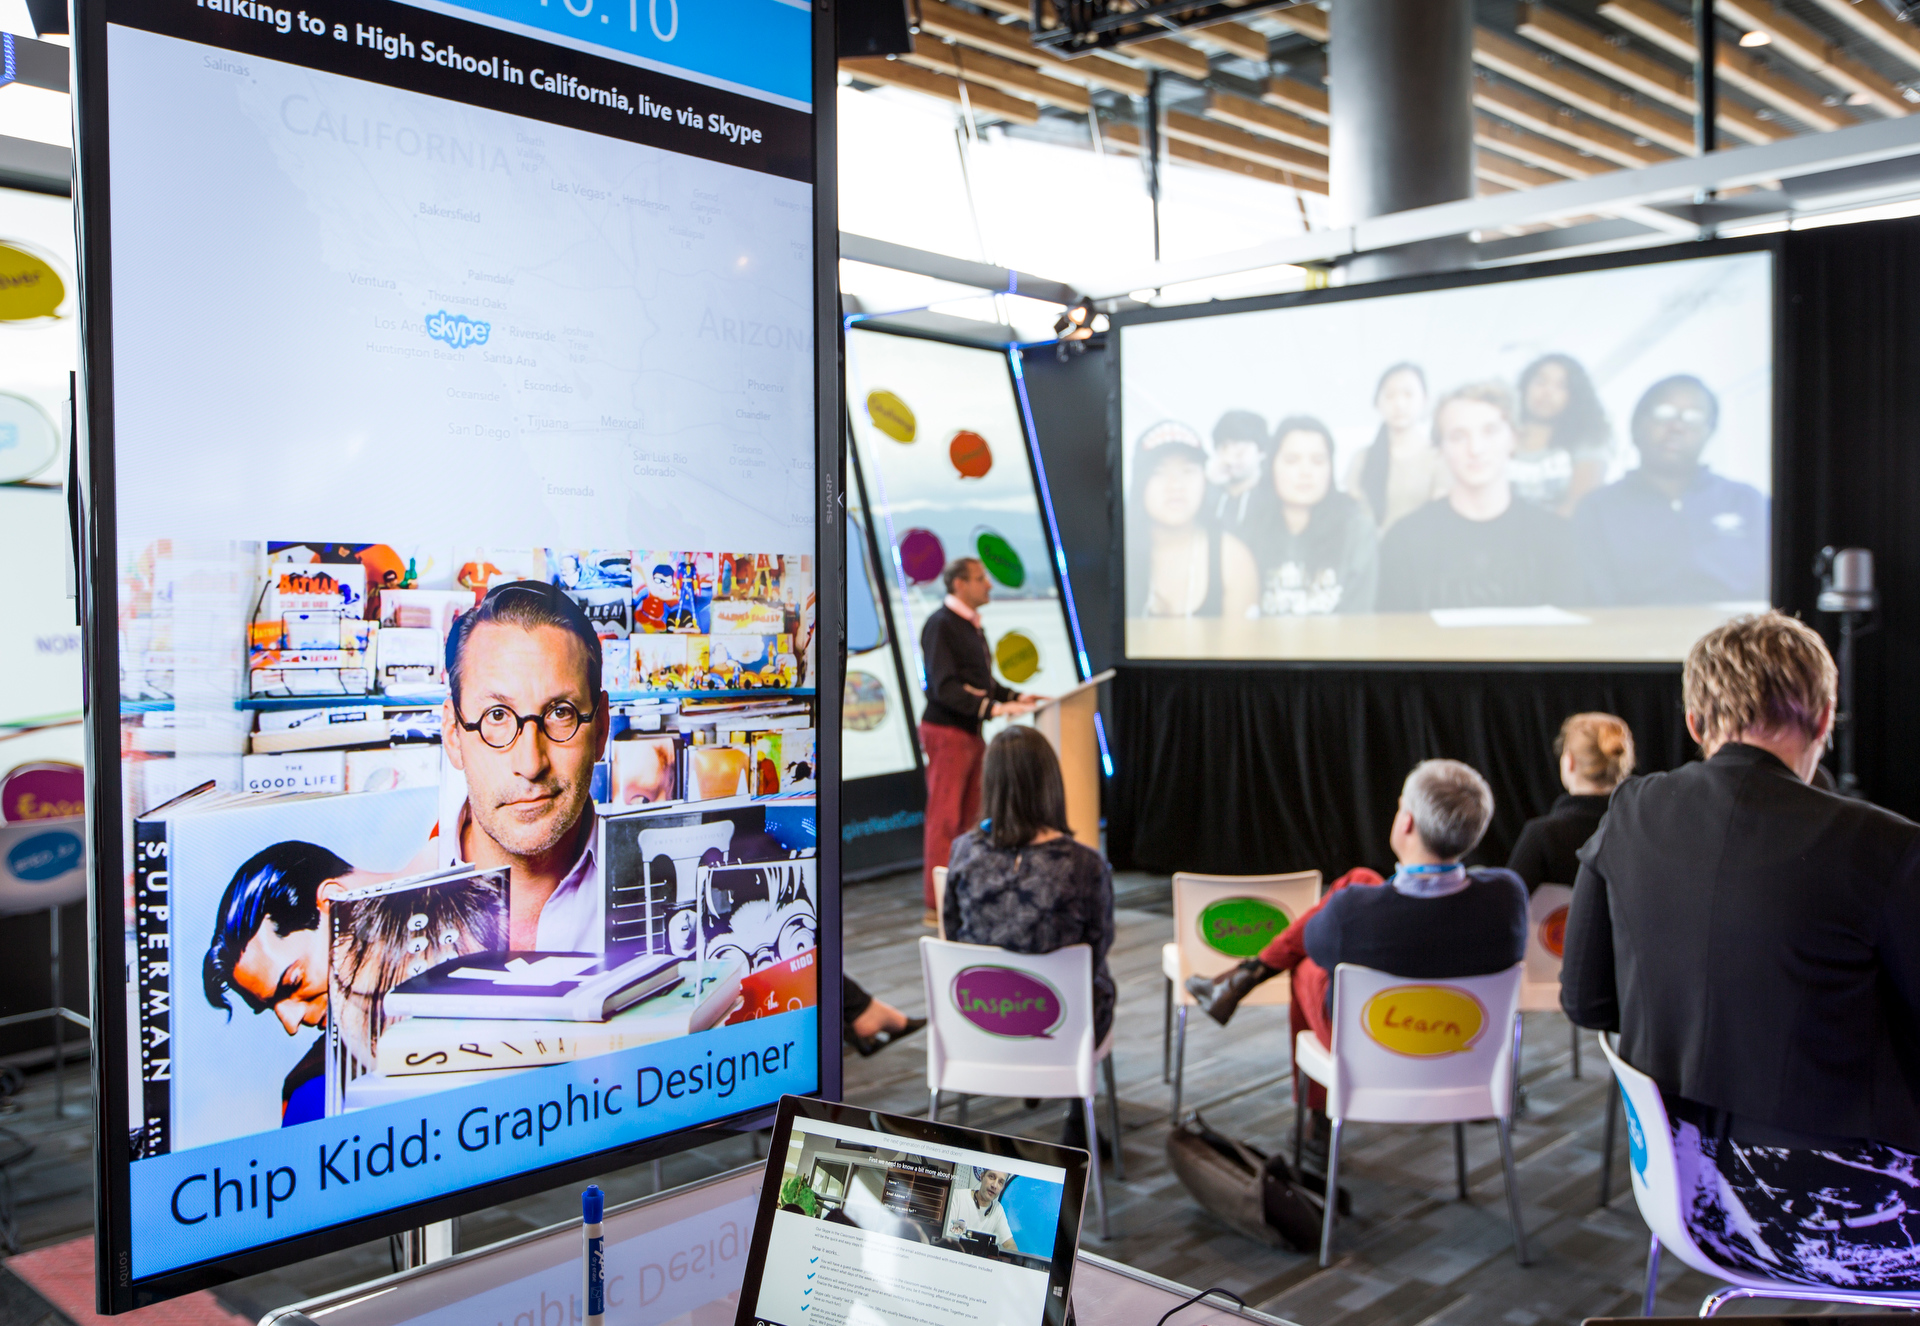 Chip Kidd chats with a classroom of students in Australia thanks to the magic of Skype in the Classroom.  Photo: Ryan Lash/TED